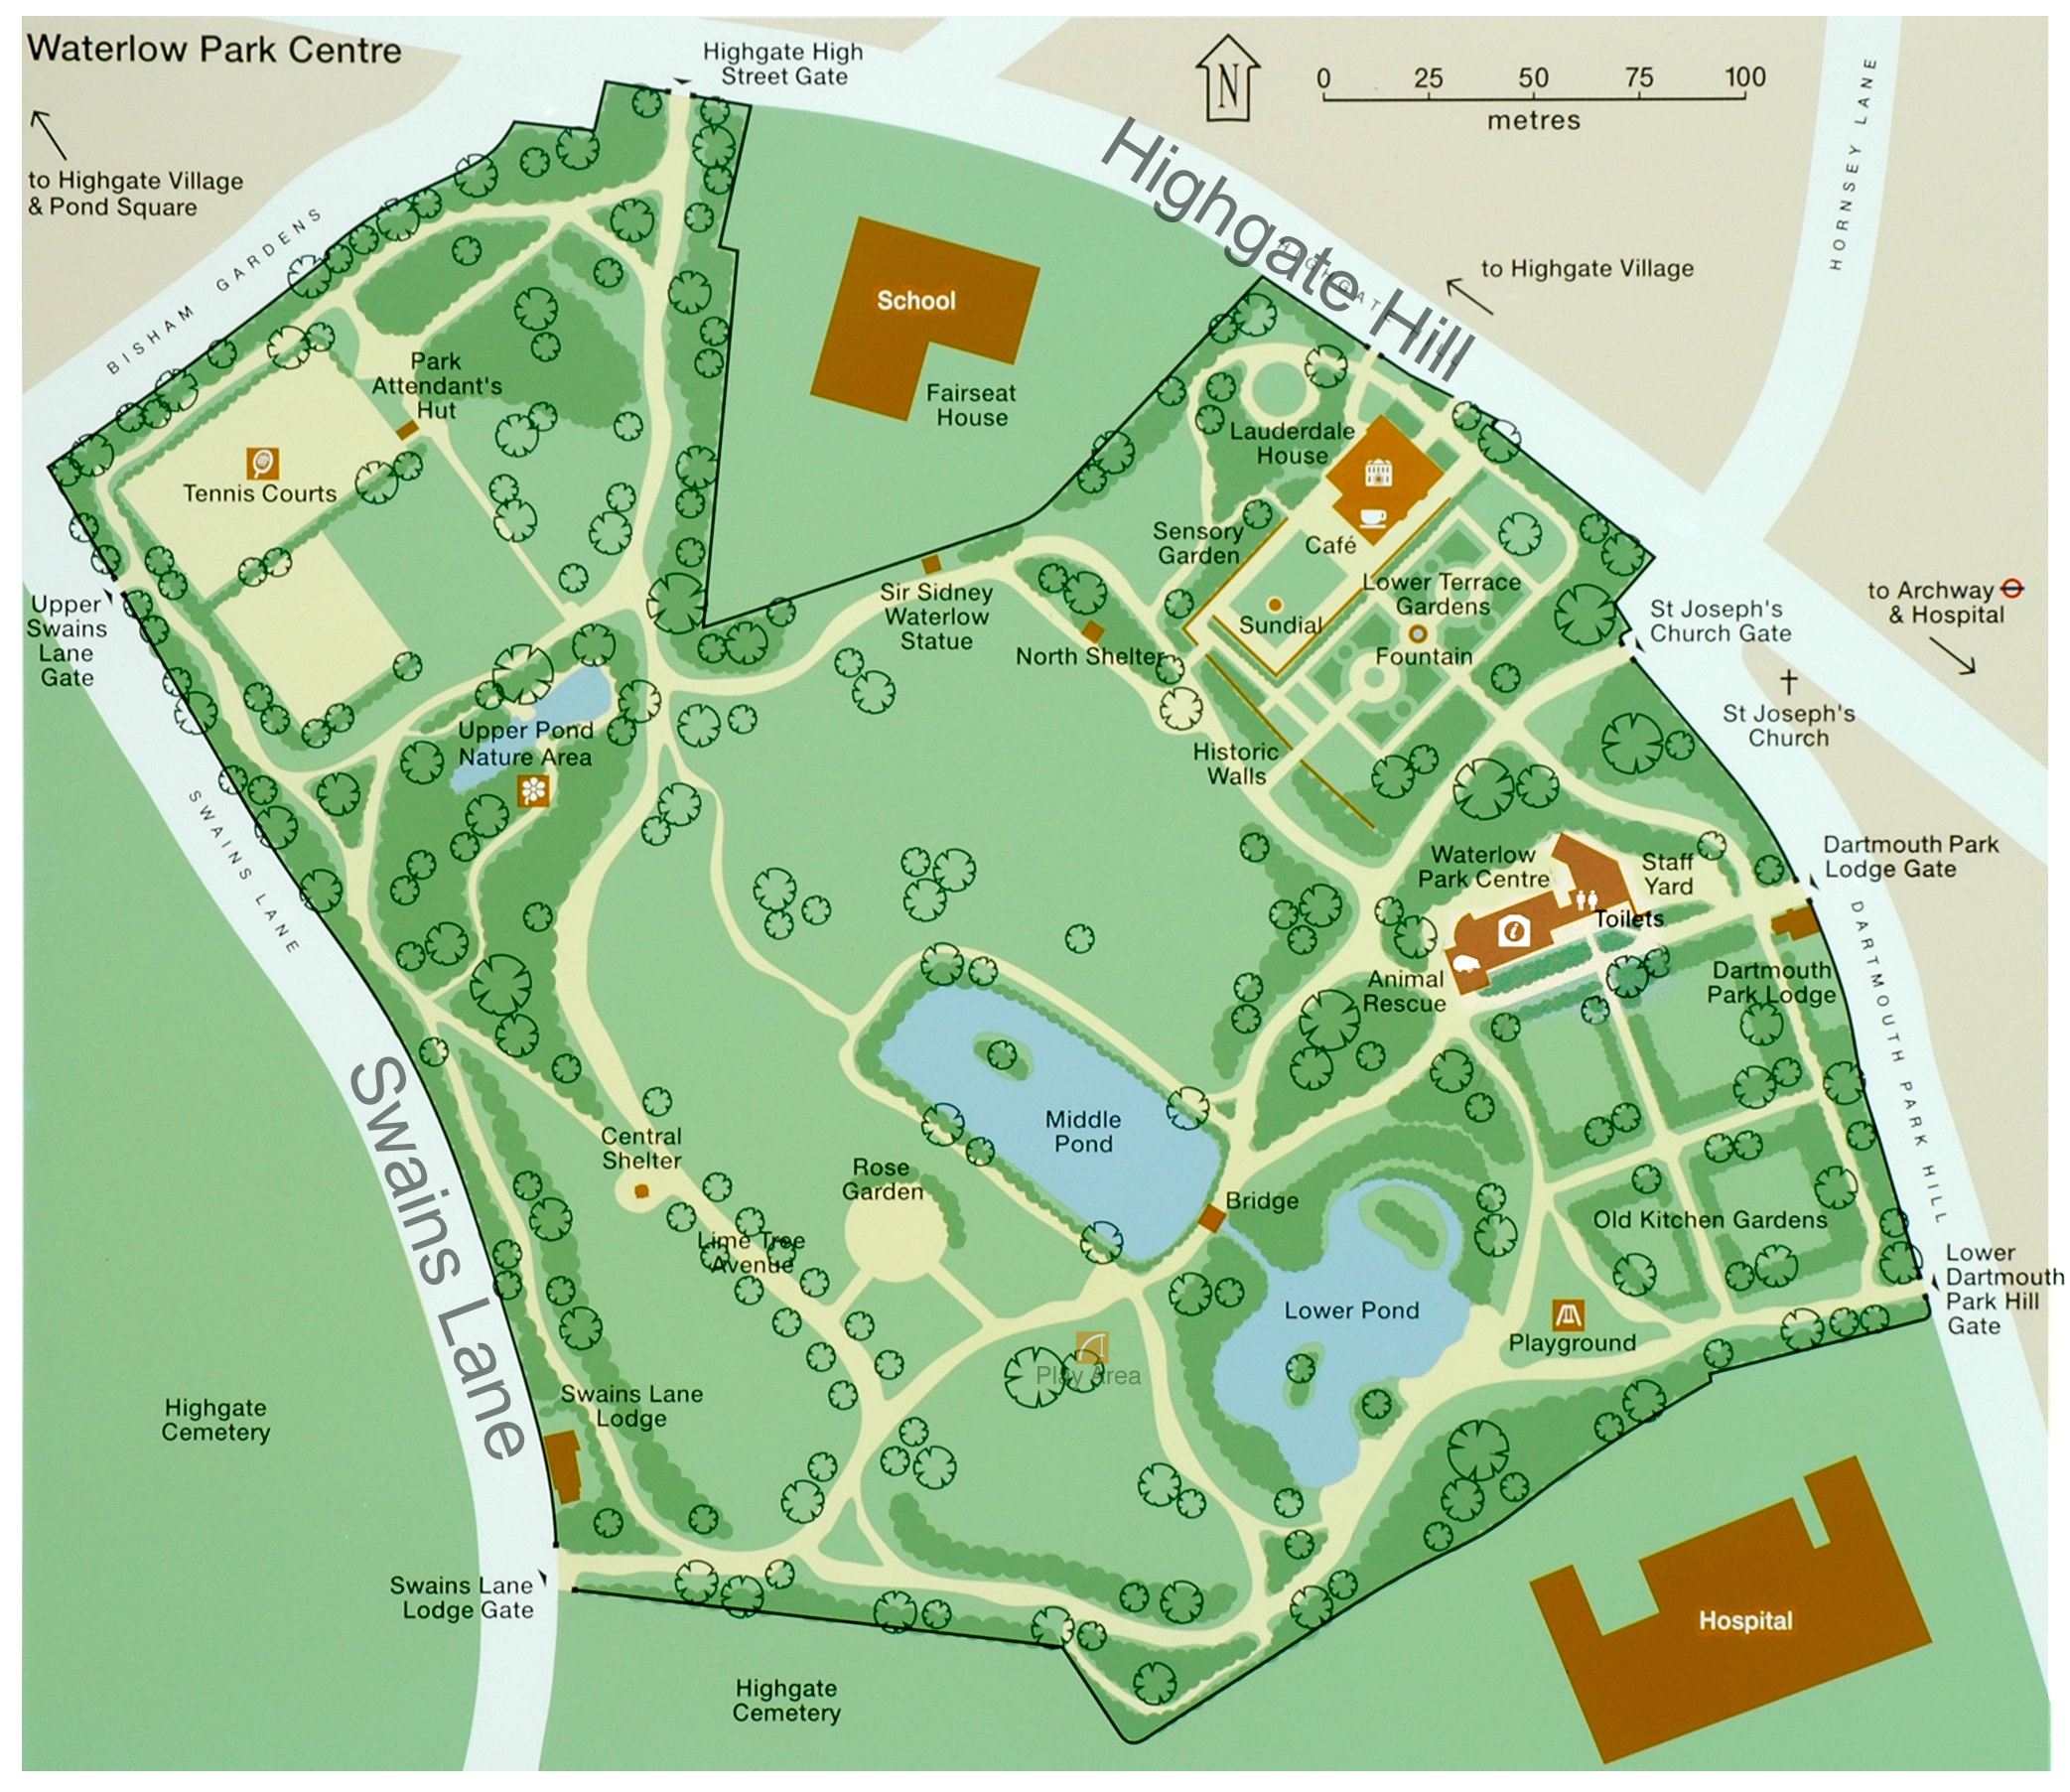 Waterloo Park Map Waterlow Park   Map and Facilities